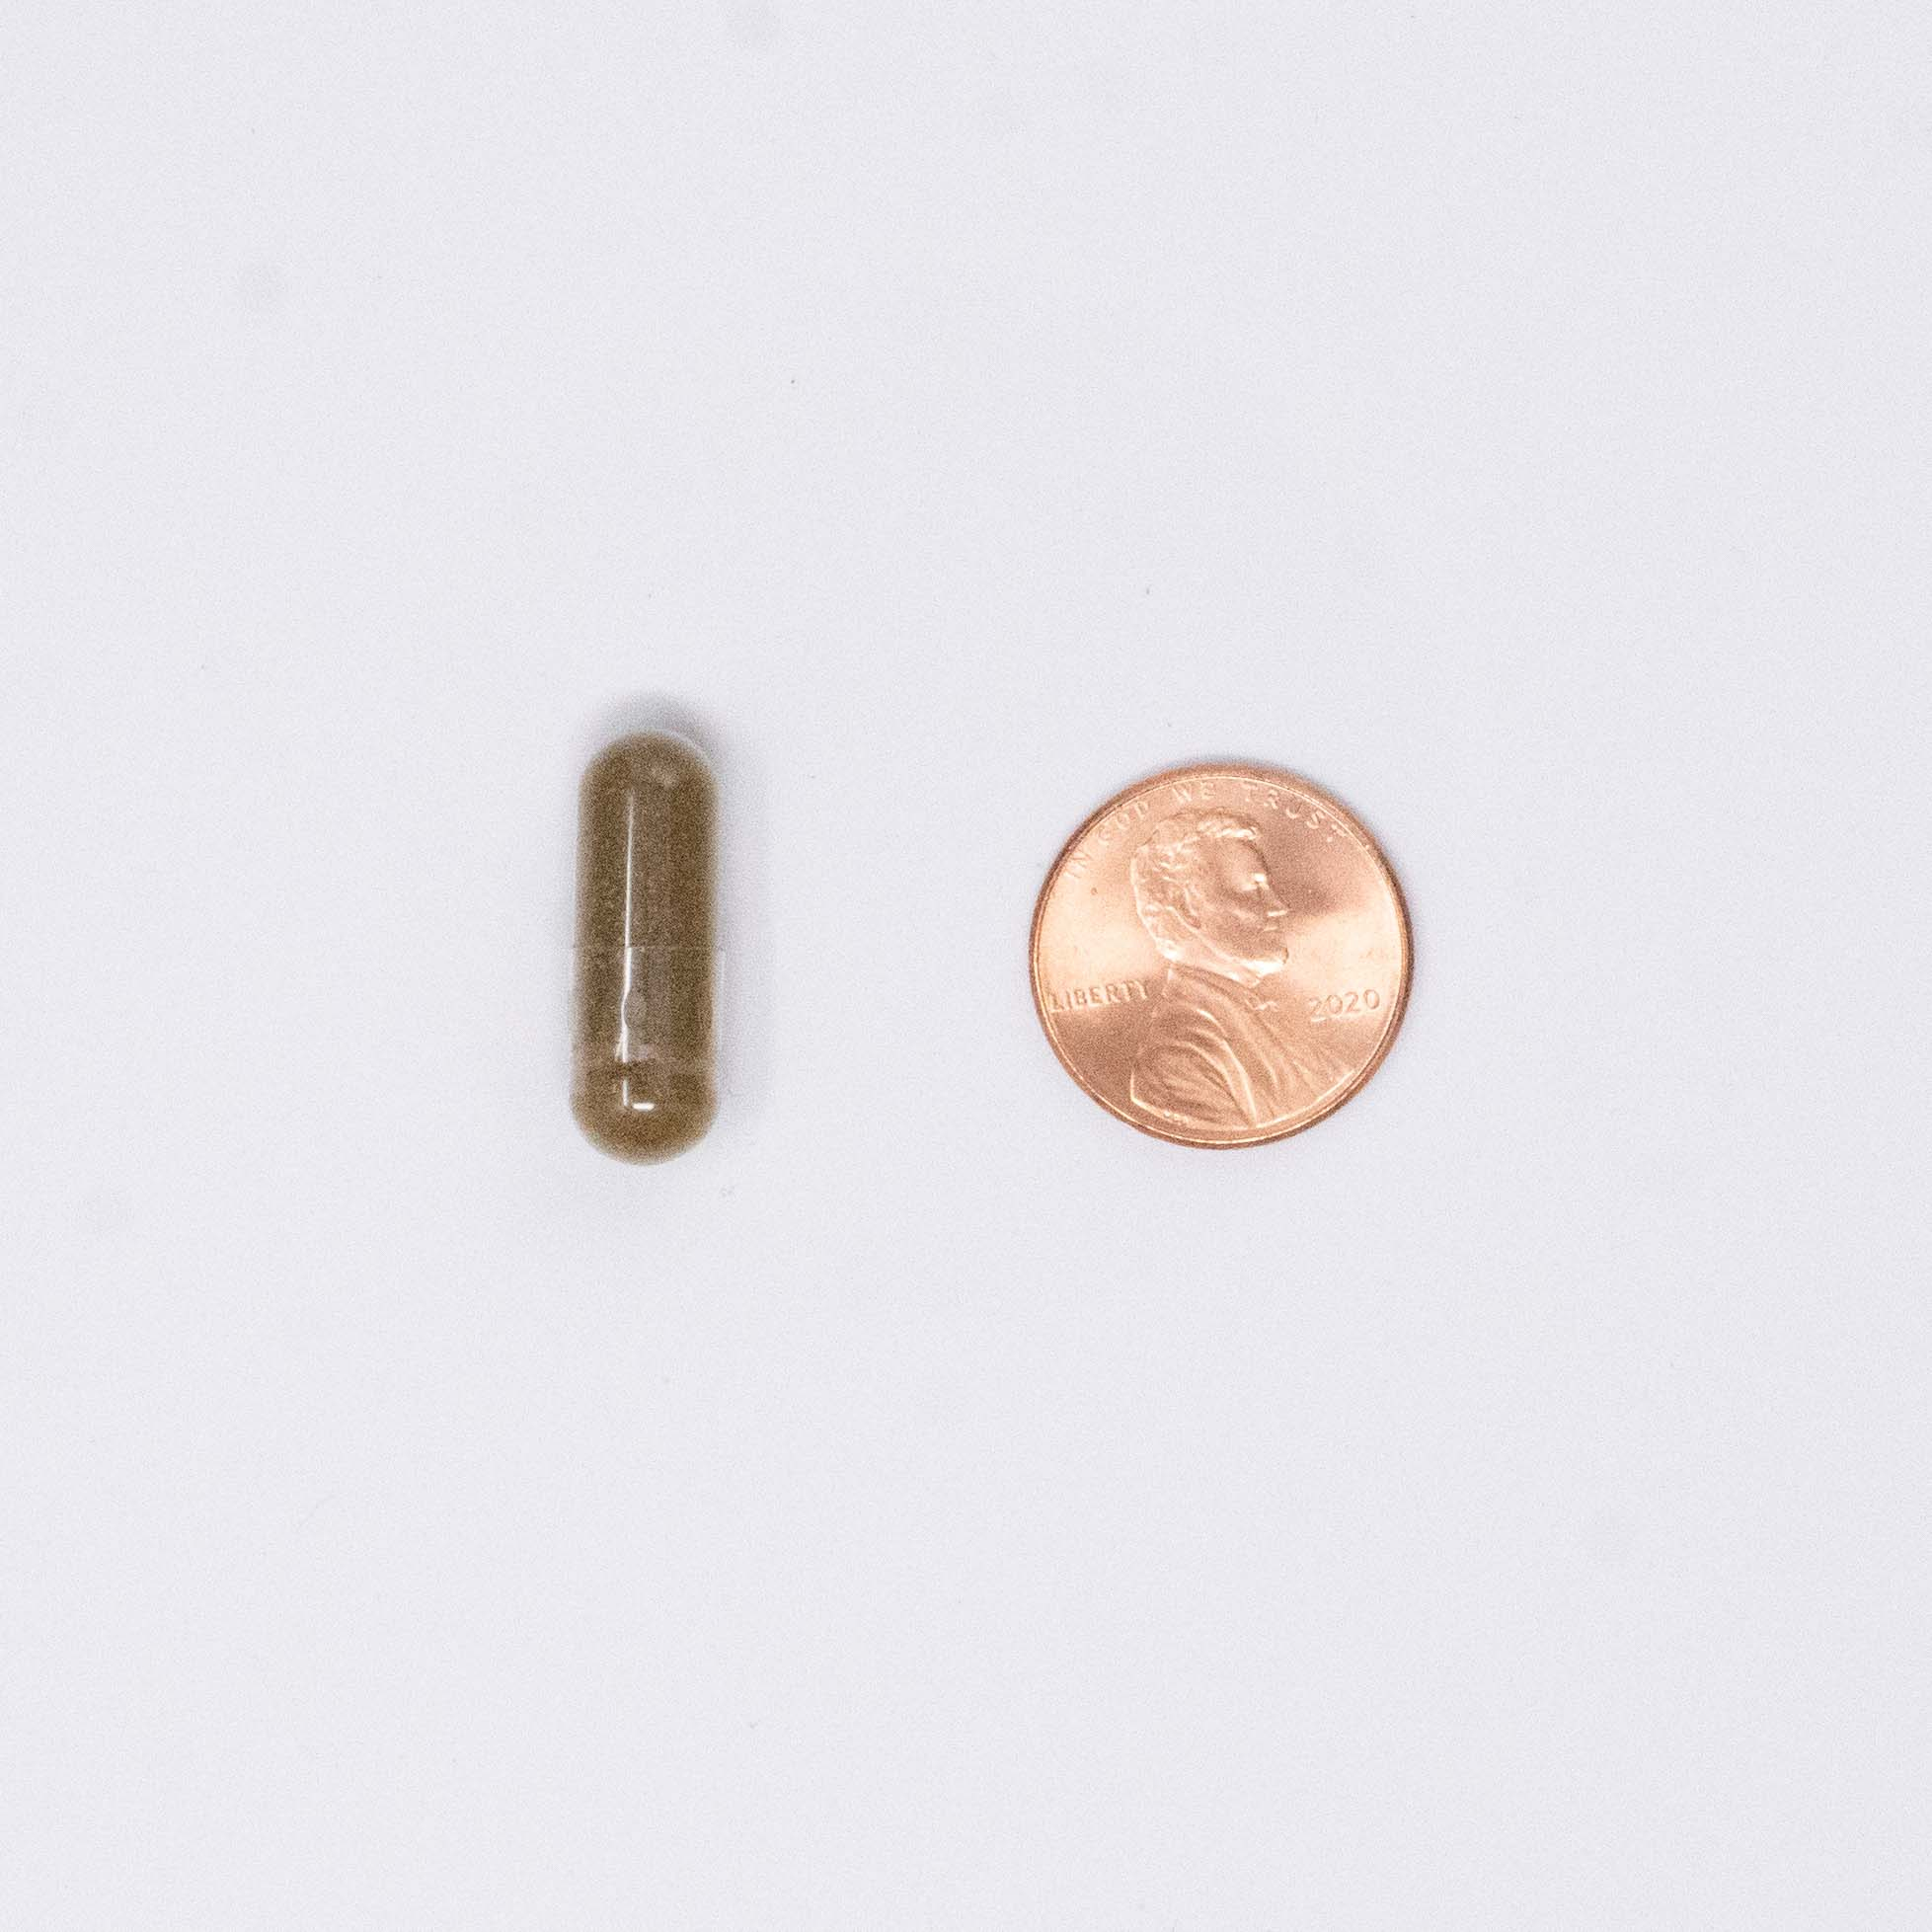 red vitamin capsule next to a penny